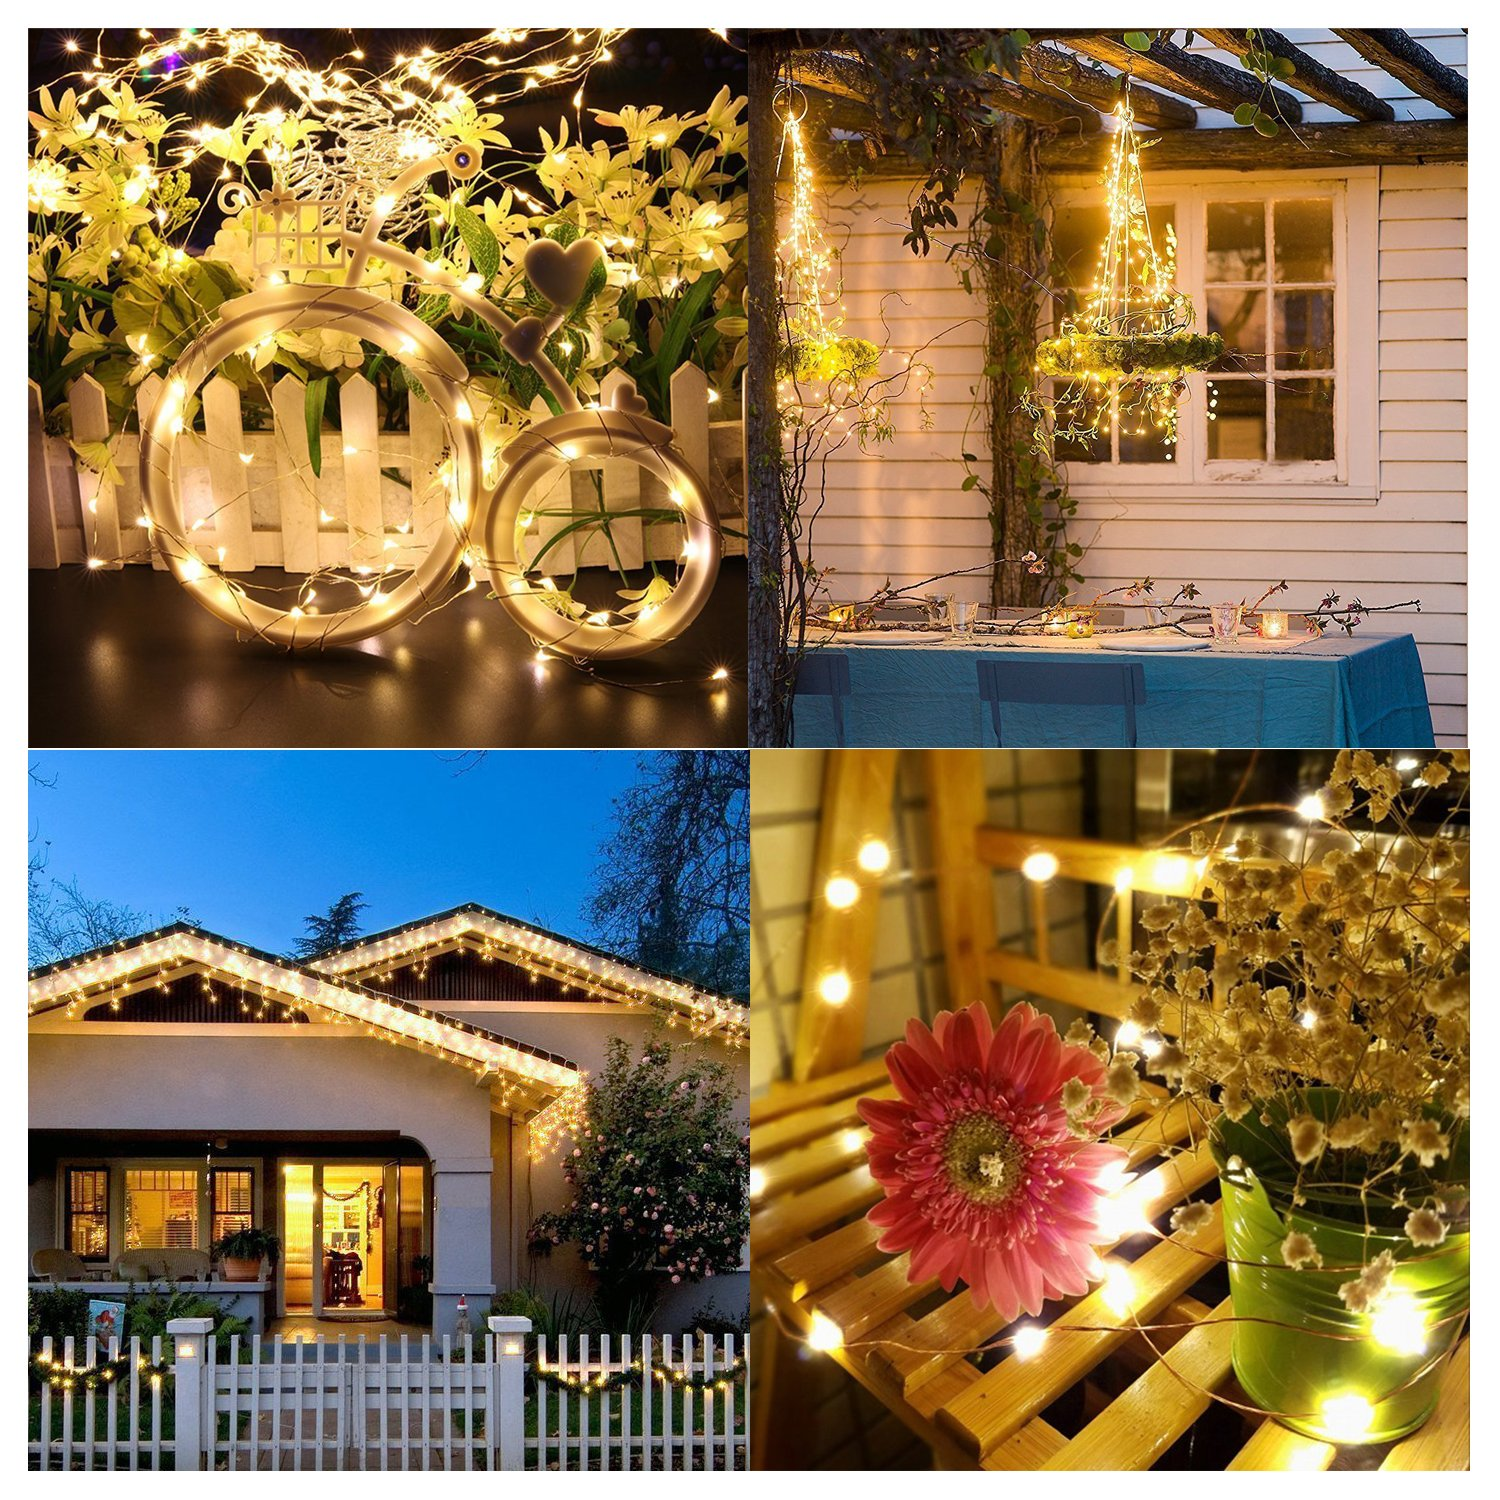 String Lights 2 Set 100 LED Christmas Fairy Lights with Remote Control(Timer),Warmtaste 33ft String Waterproof Copper Wire, Decor Rope Lights for Bedroom,Patio,Garden,Parties,Wedding(Warm White ) by Warmtaste (Image #6)